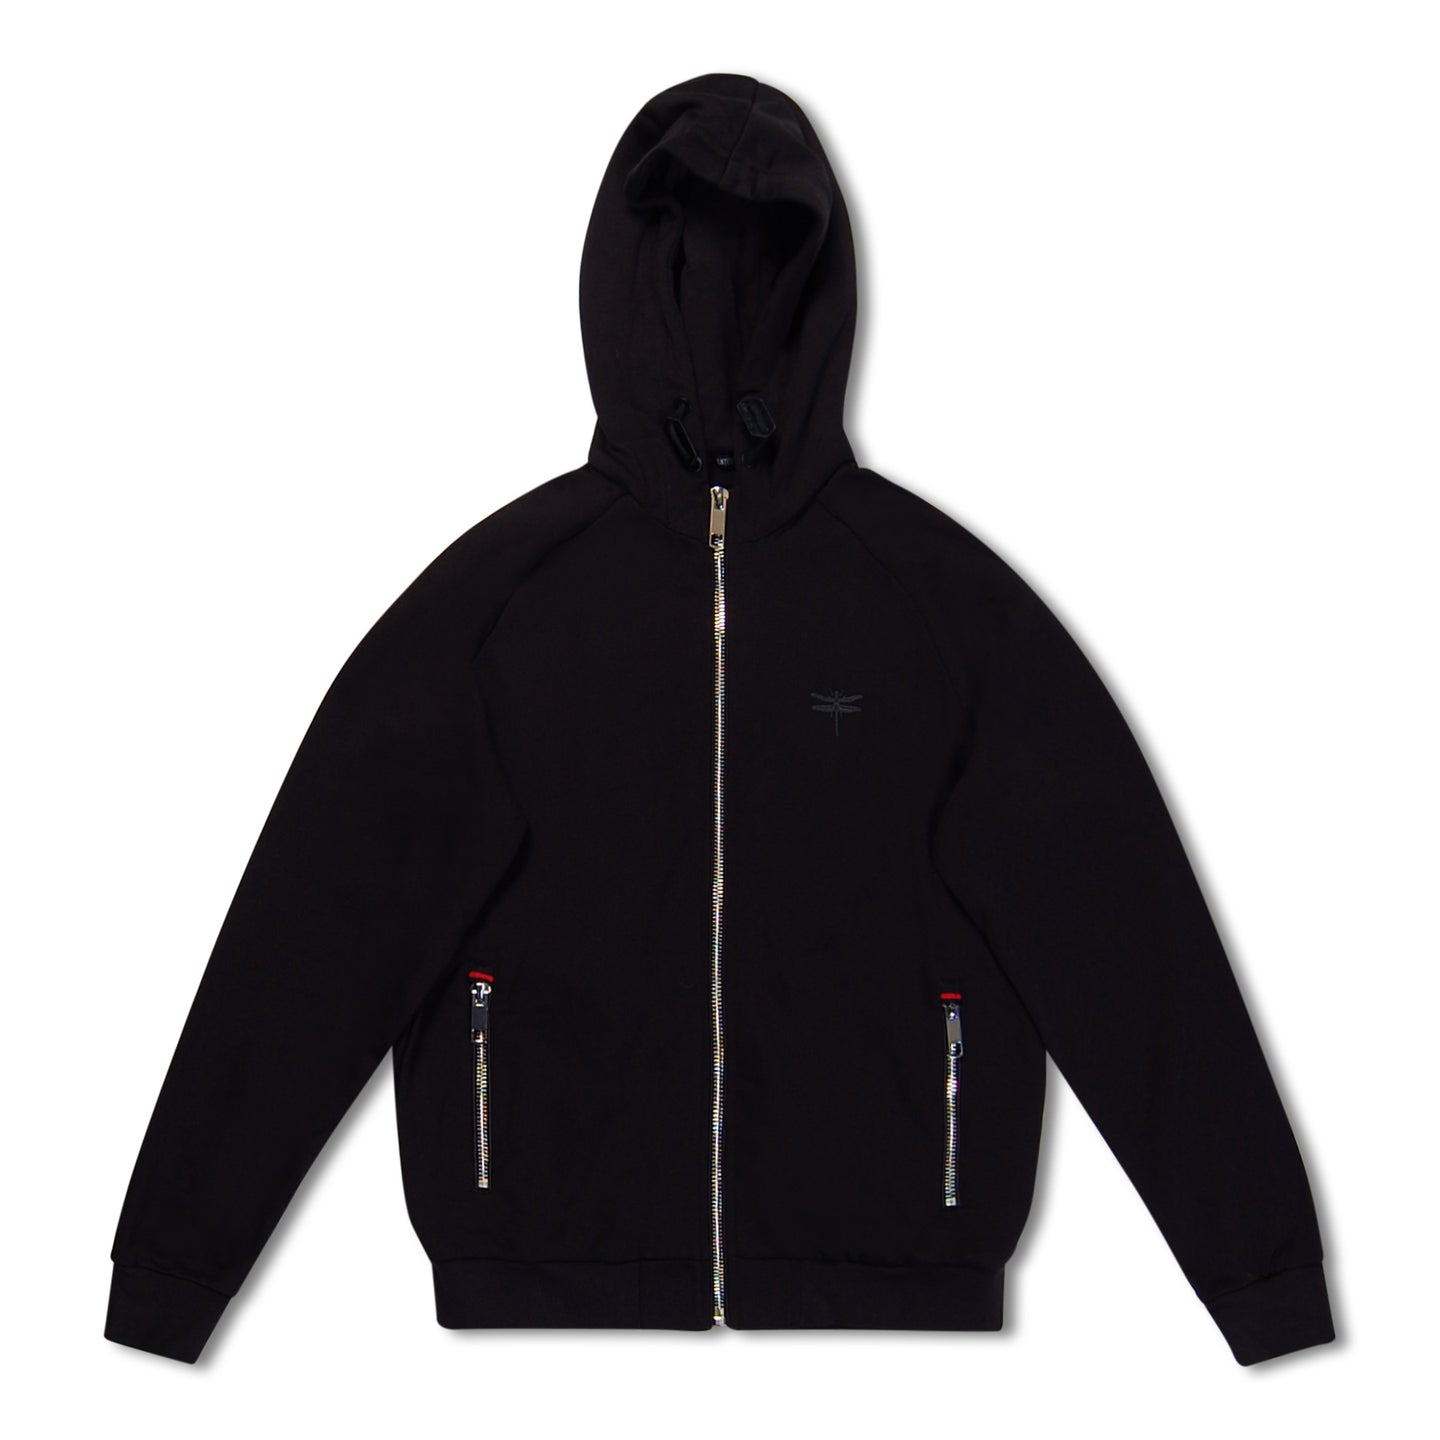 Black Antony Morato Hooded Jacket